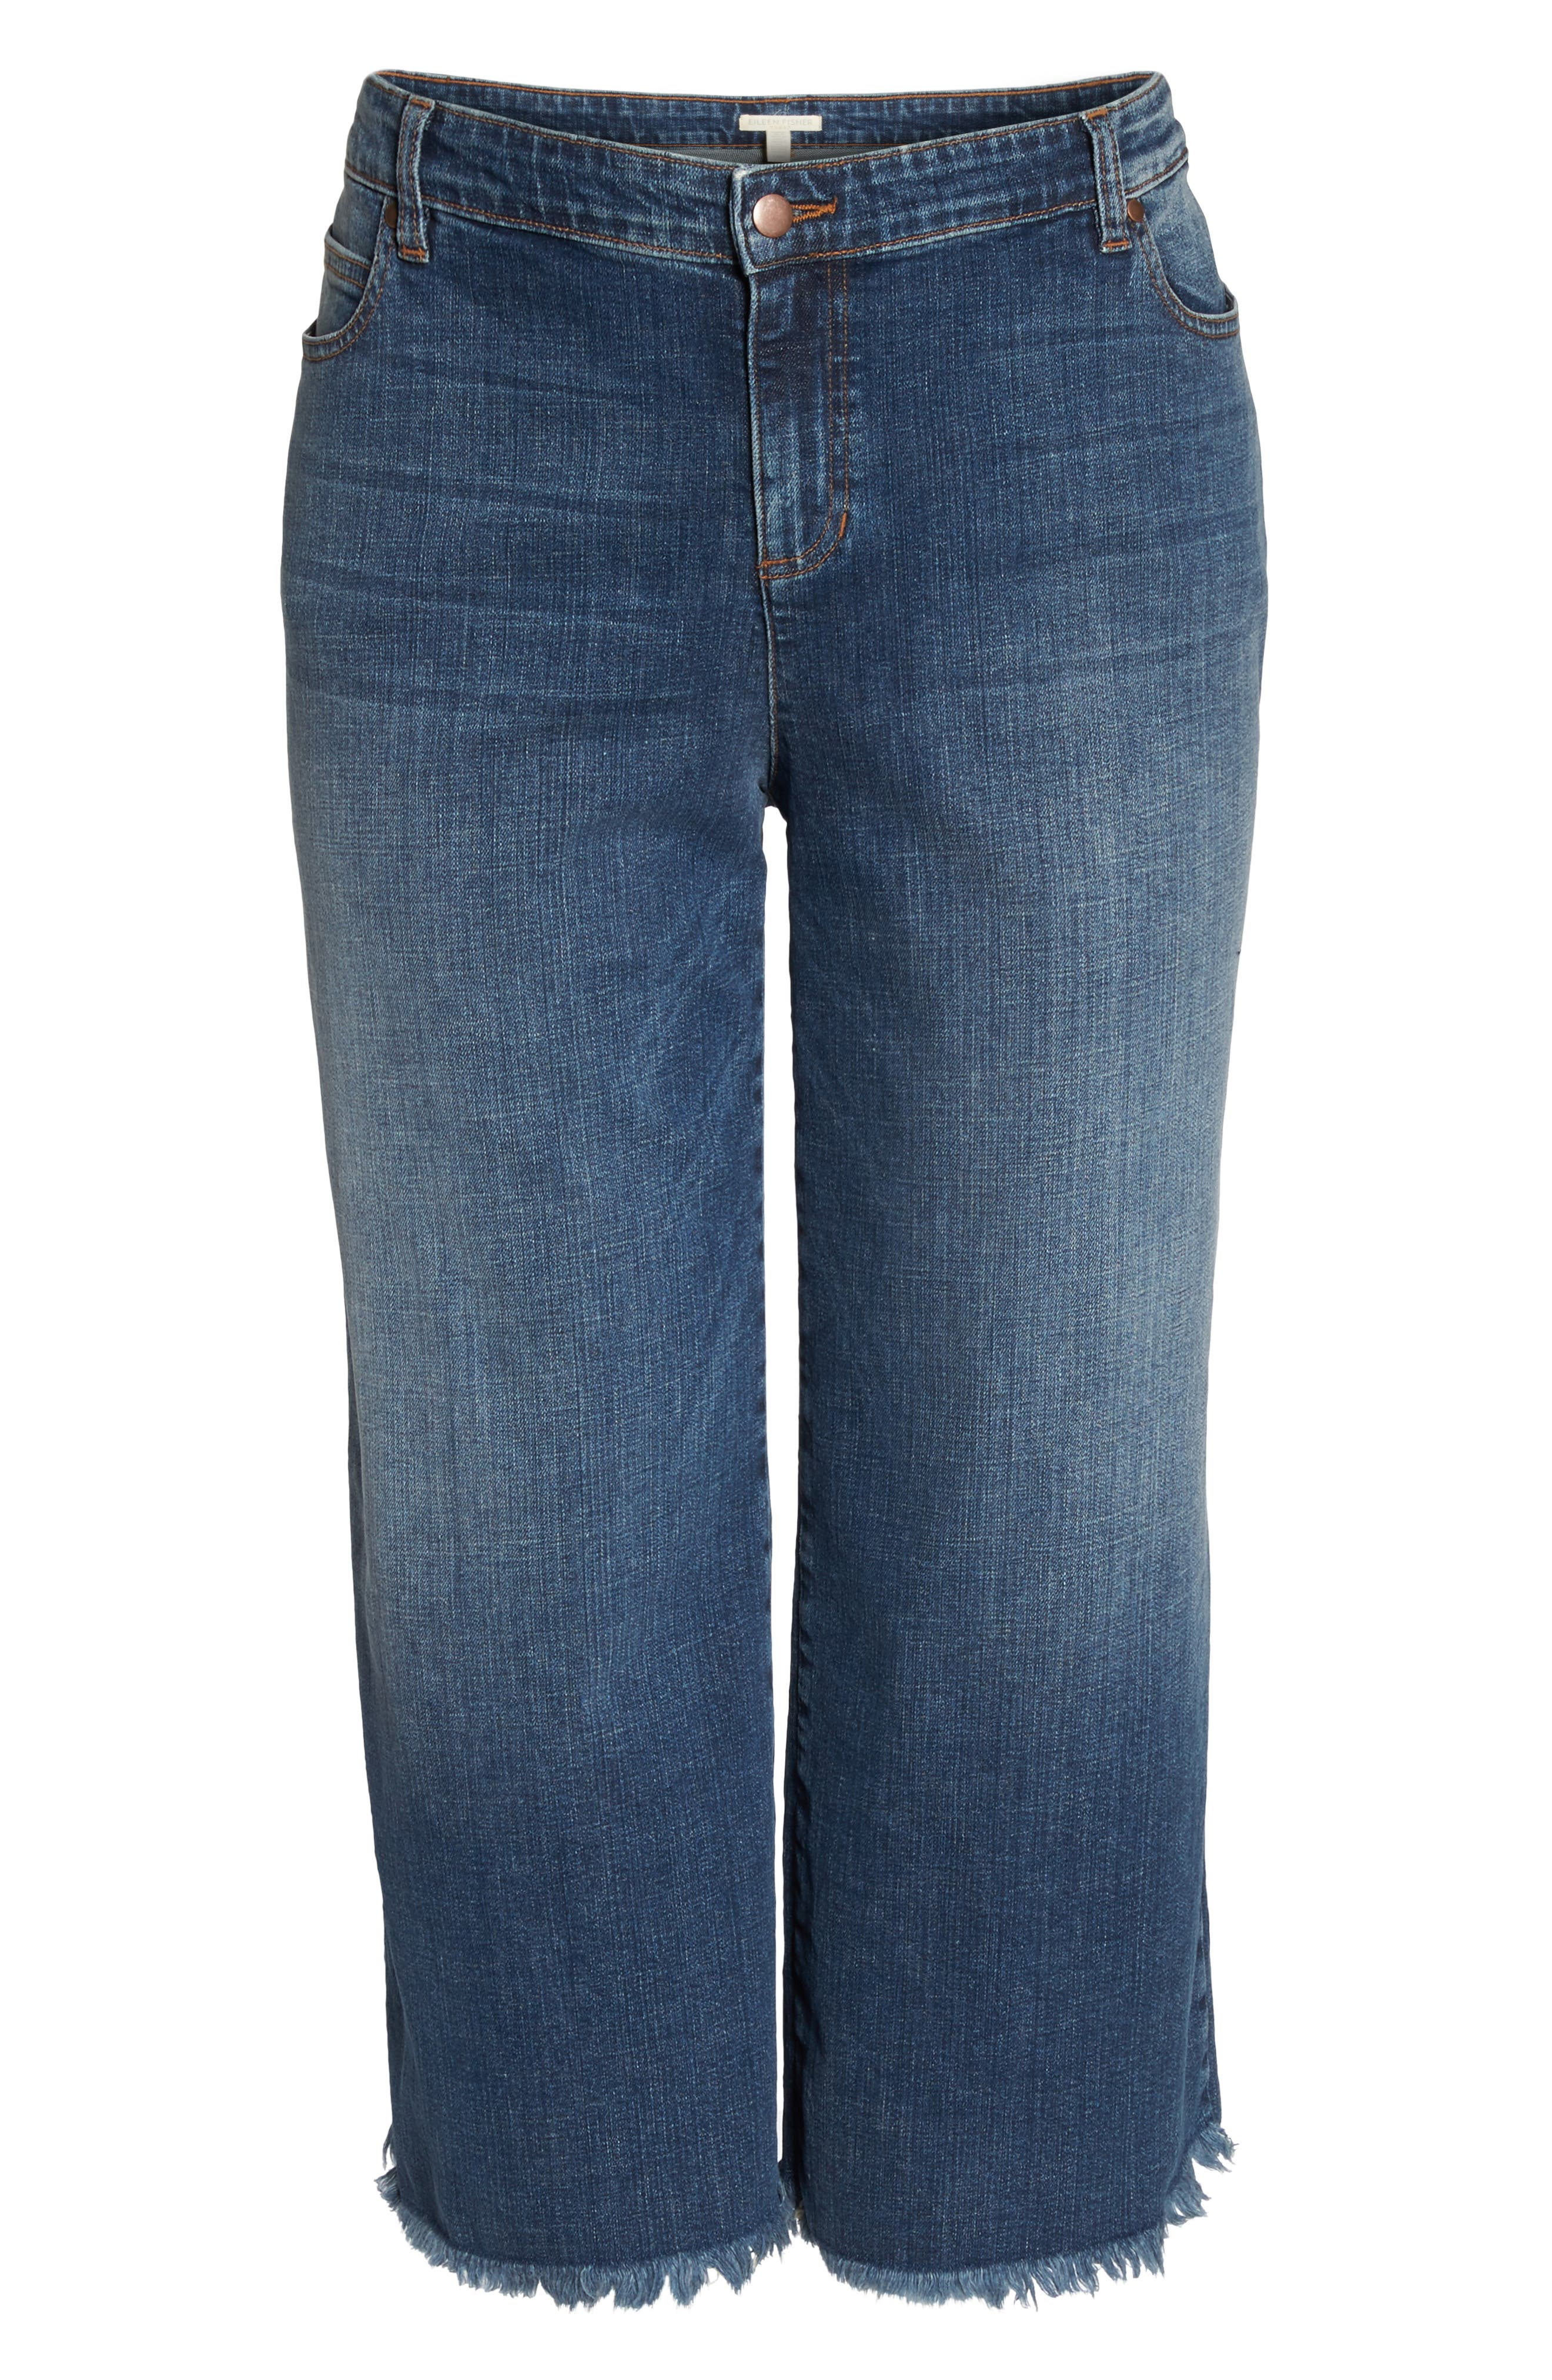 Wide Leg Ankle Jeans,                             Alternate thumbnail 7, color,                             Aged Indigo